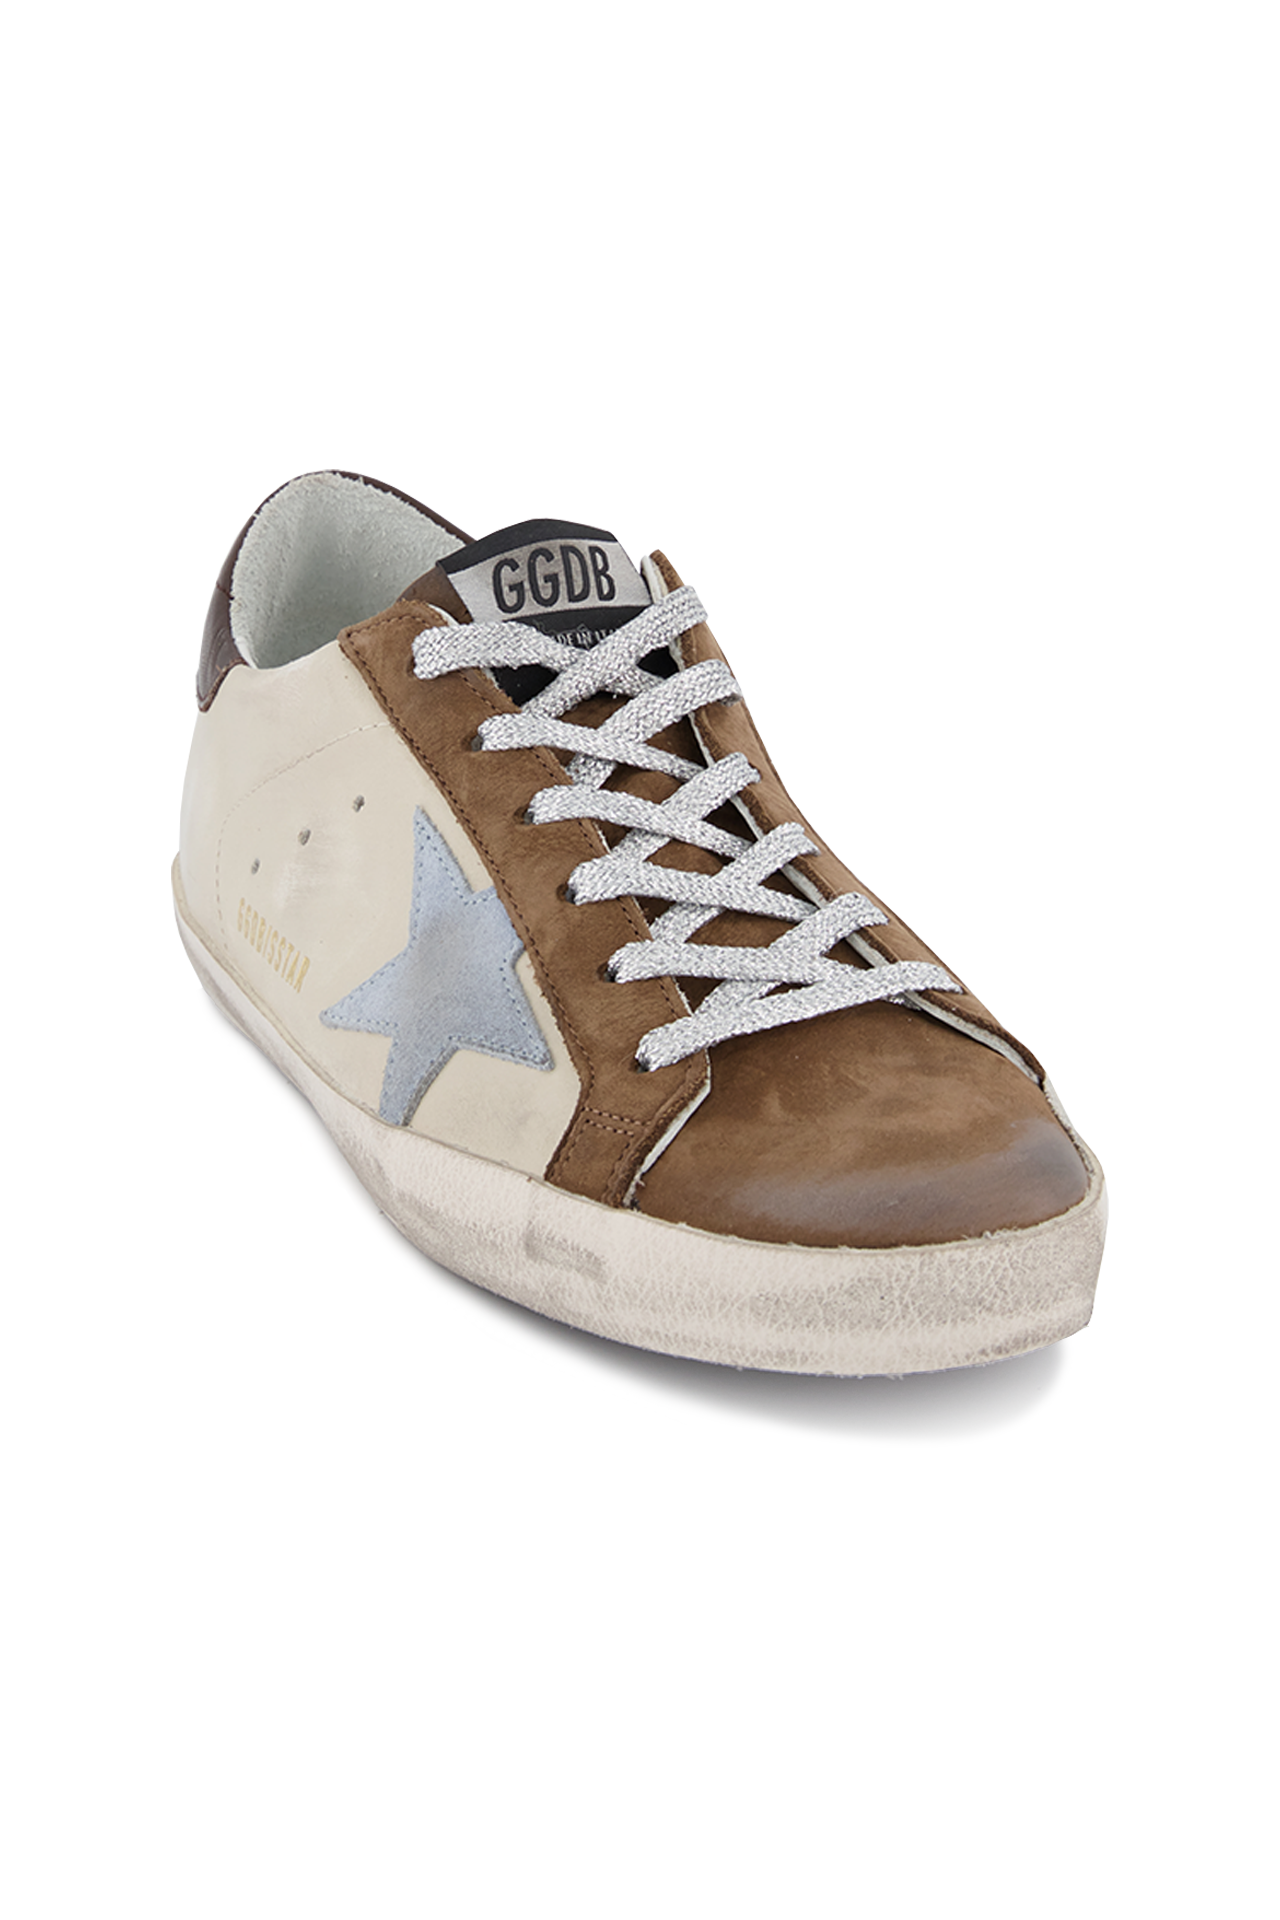 Angled view image of Golden Goose Women's Superstar Sneaker White/Brown